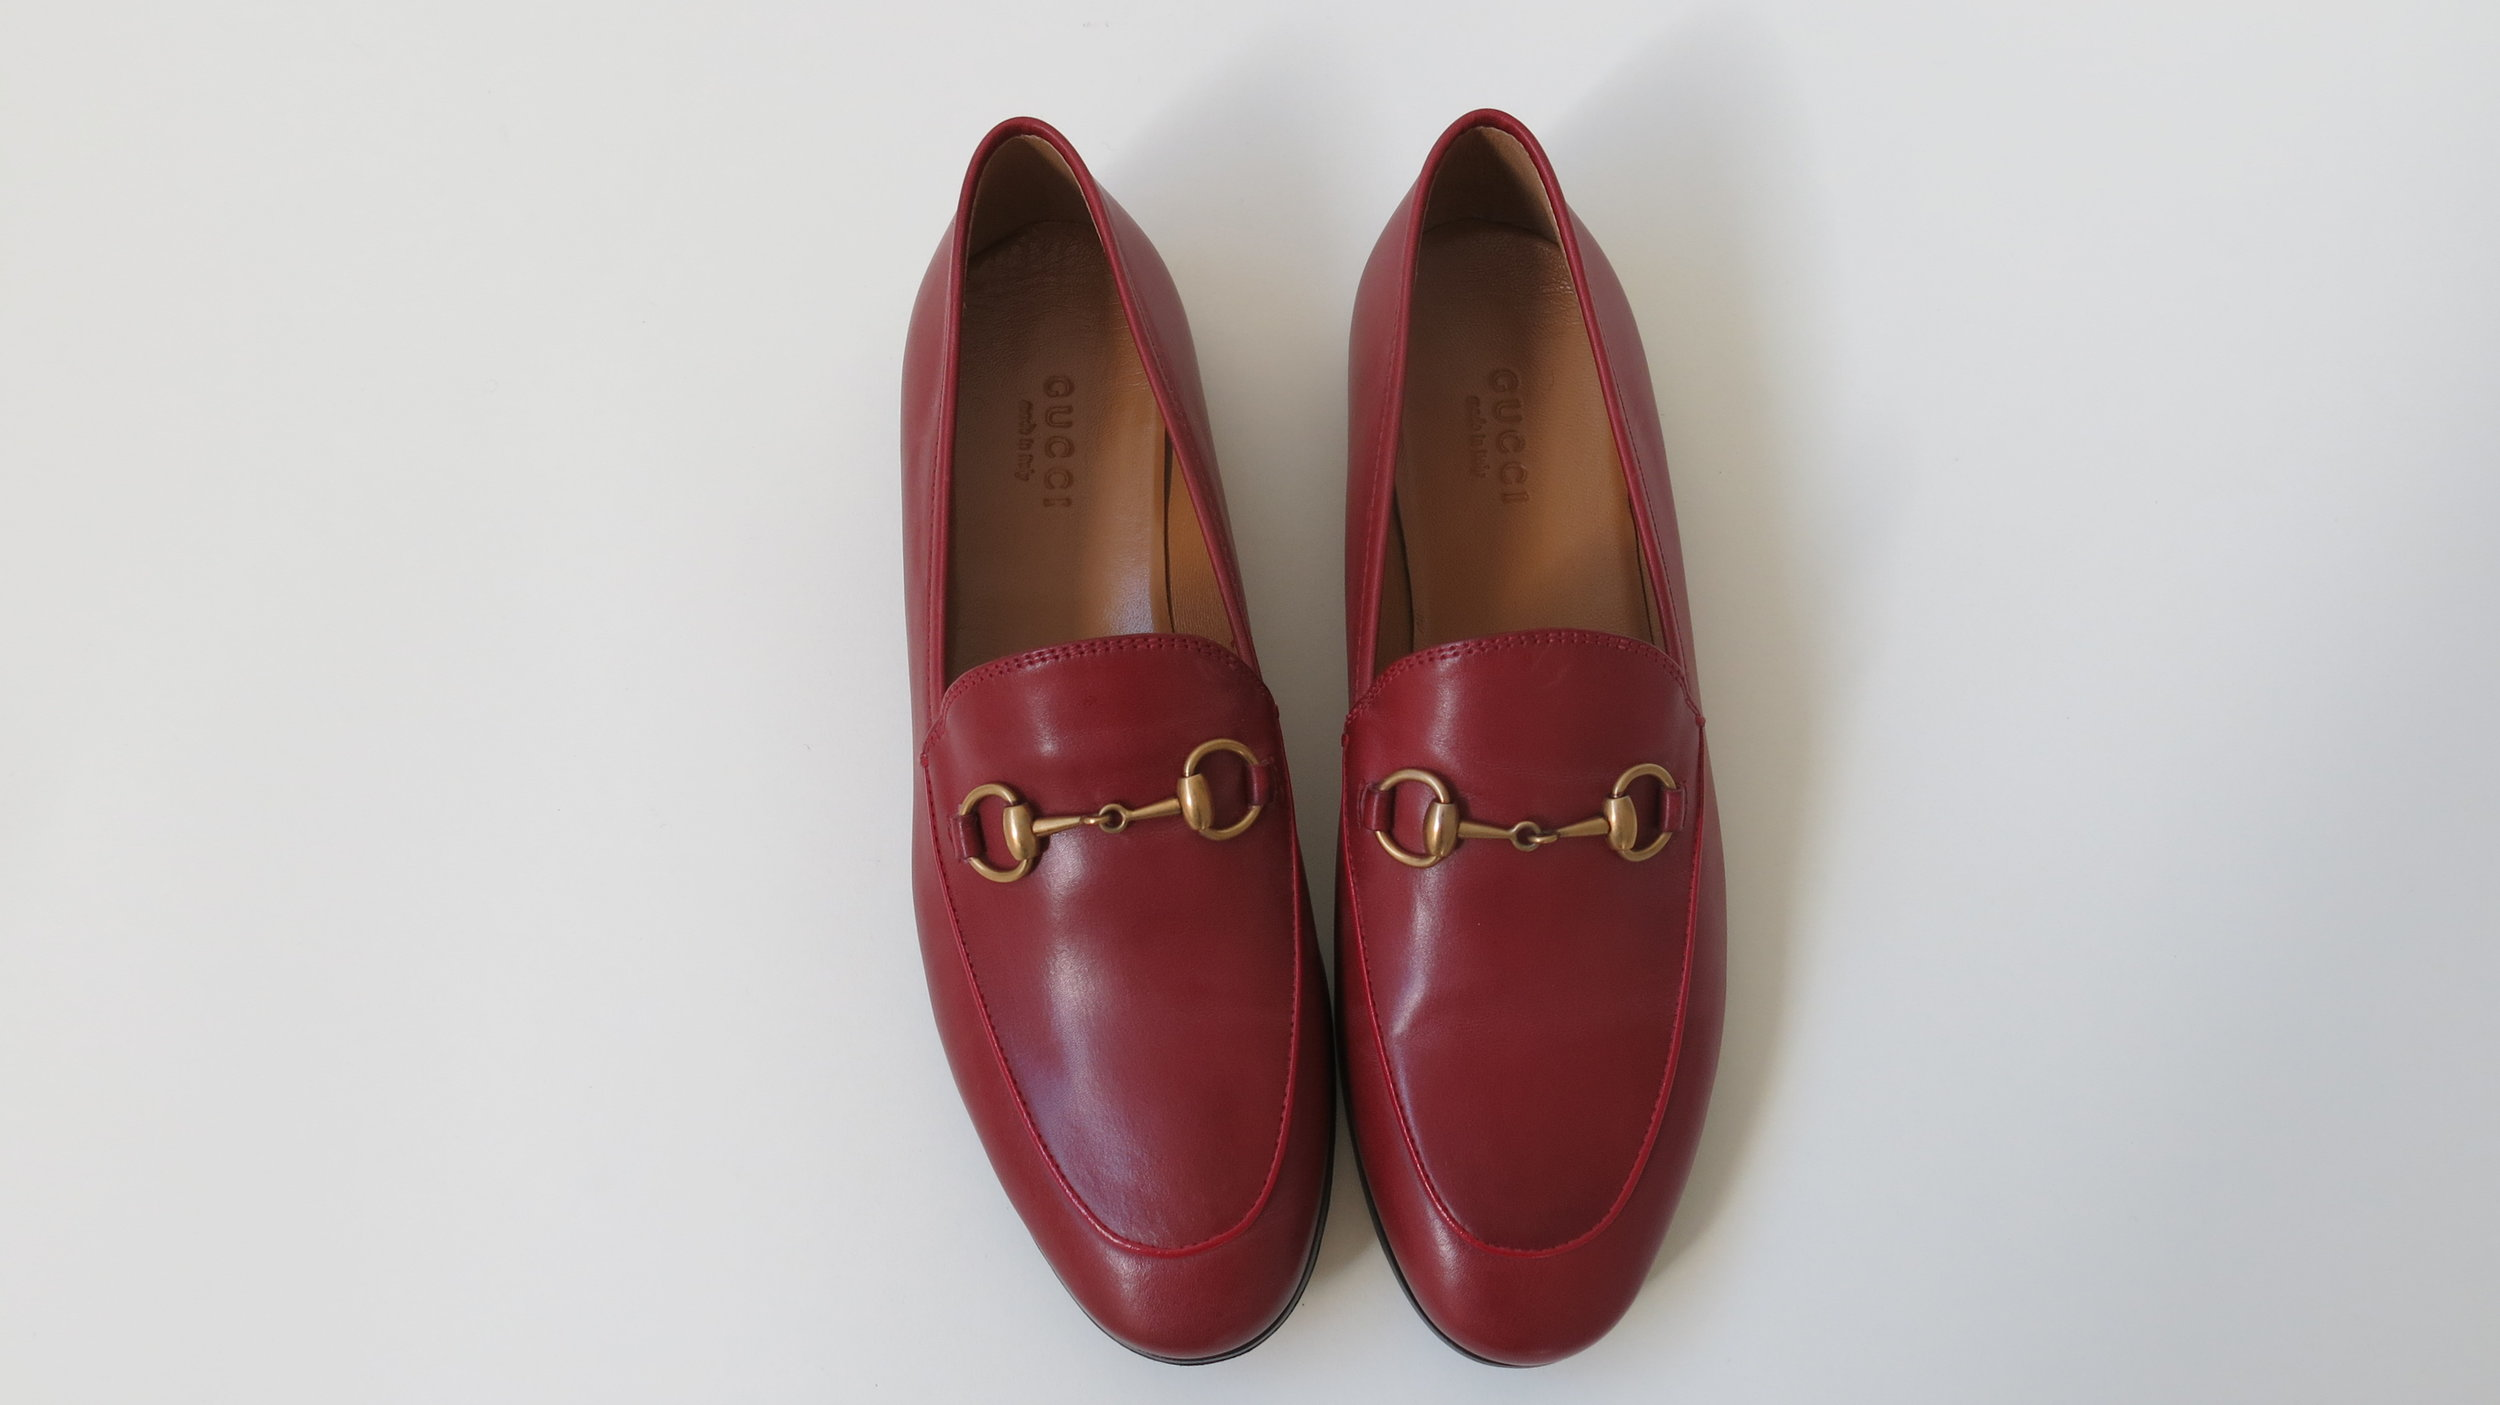 I am so happy that Red is making a comeback, especially when it's in the form of a  classic loafer . These go with everything, and I will be wearing them in the winter with cozy sweaters. When the winter months are waning, I will be pairing them with summer dresses. Loving these all year long!